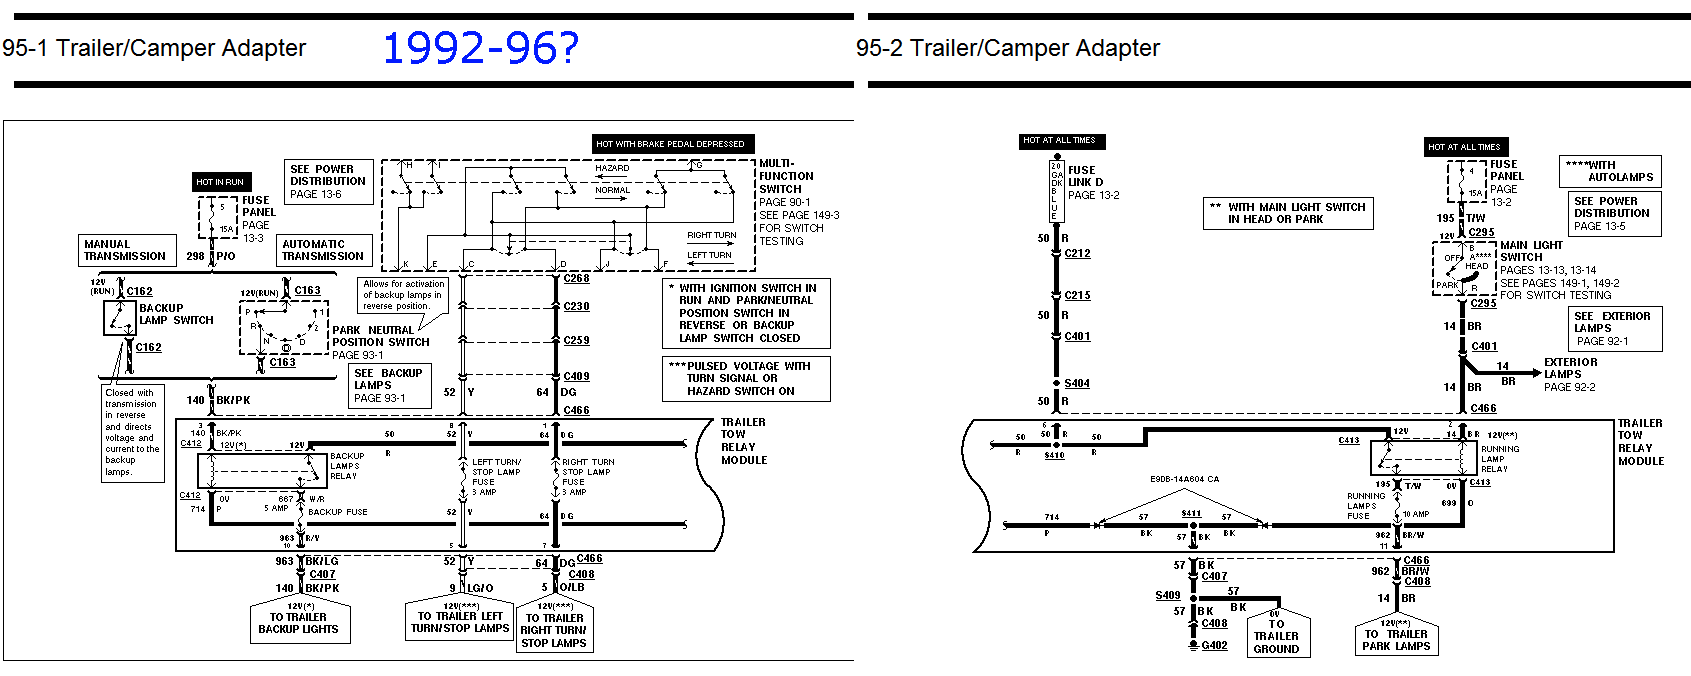 flasher relay wiring diagram with 1269685 Trailer Tow Package And Trailer Wiring Questions on TFI Diagnostic further 98 Ford Explorer Flasher Relay Location as well Pre Sept 1968 further Book Value For 1989 Chevy S 10 Tahoe besides 3ec80 Location High Mounted Stop Light Relay Switch Brake Lights.